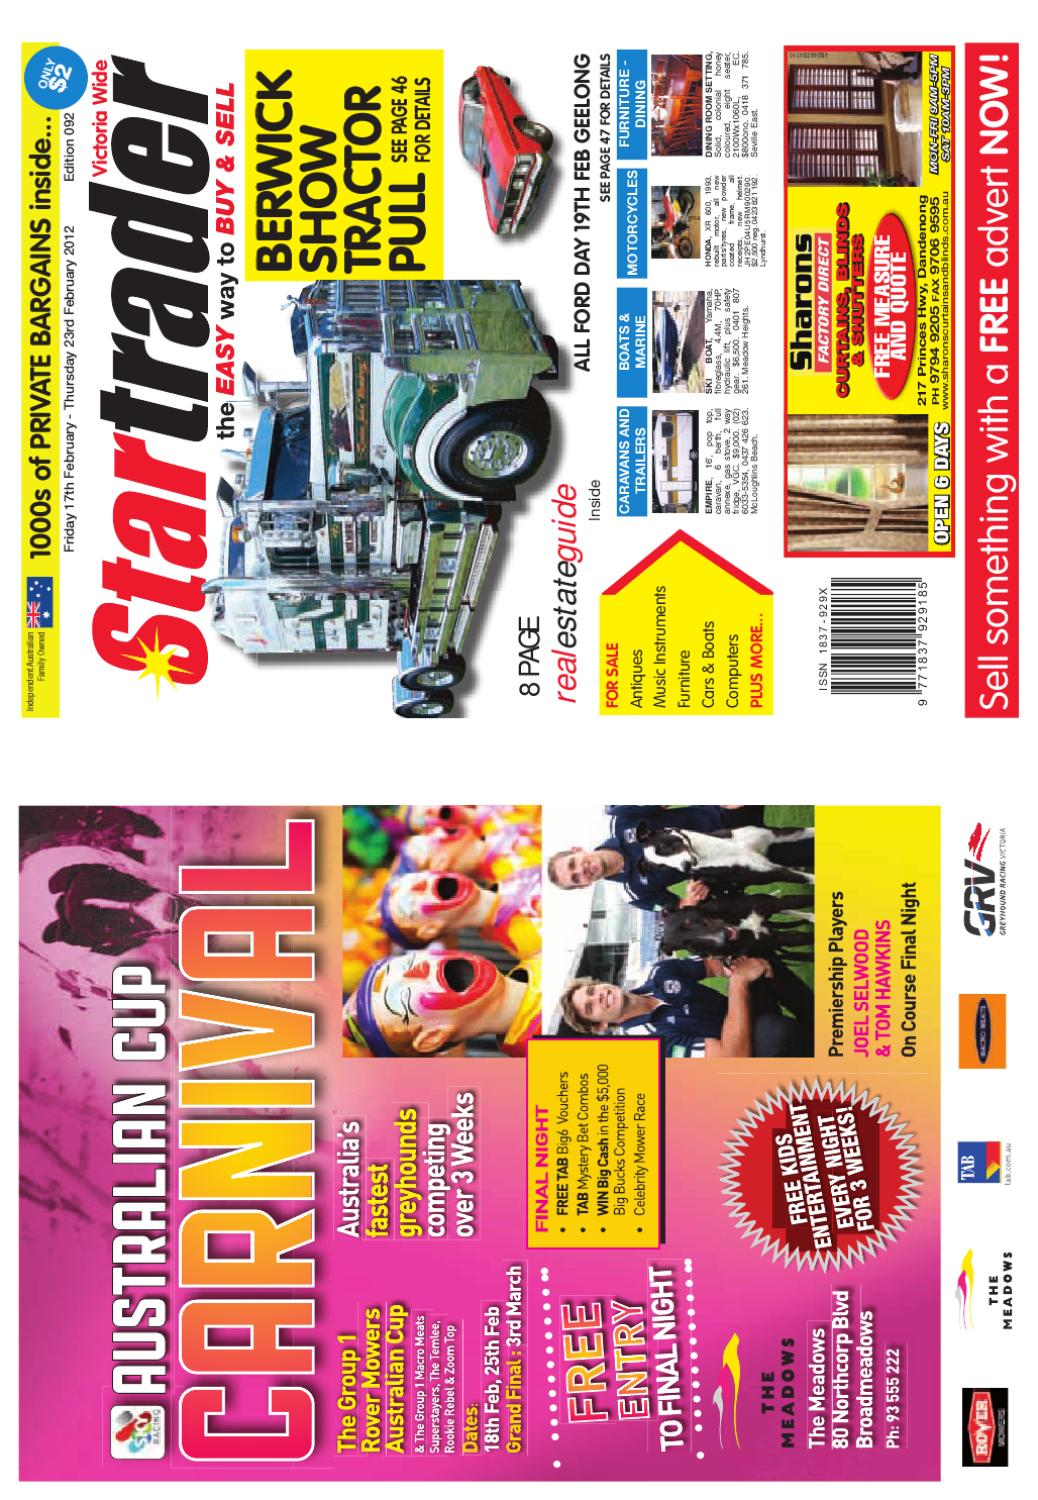 58e2cb33c9a58 ST Epaper 17022012 by Star News Group - issuu